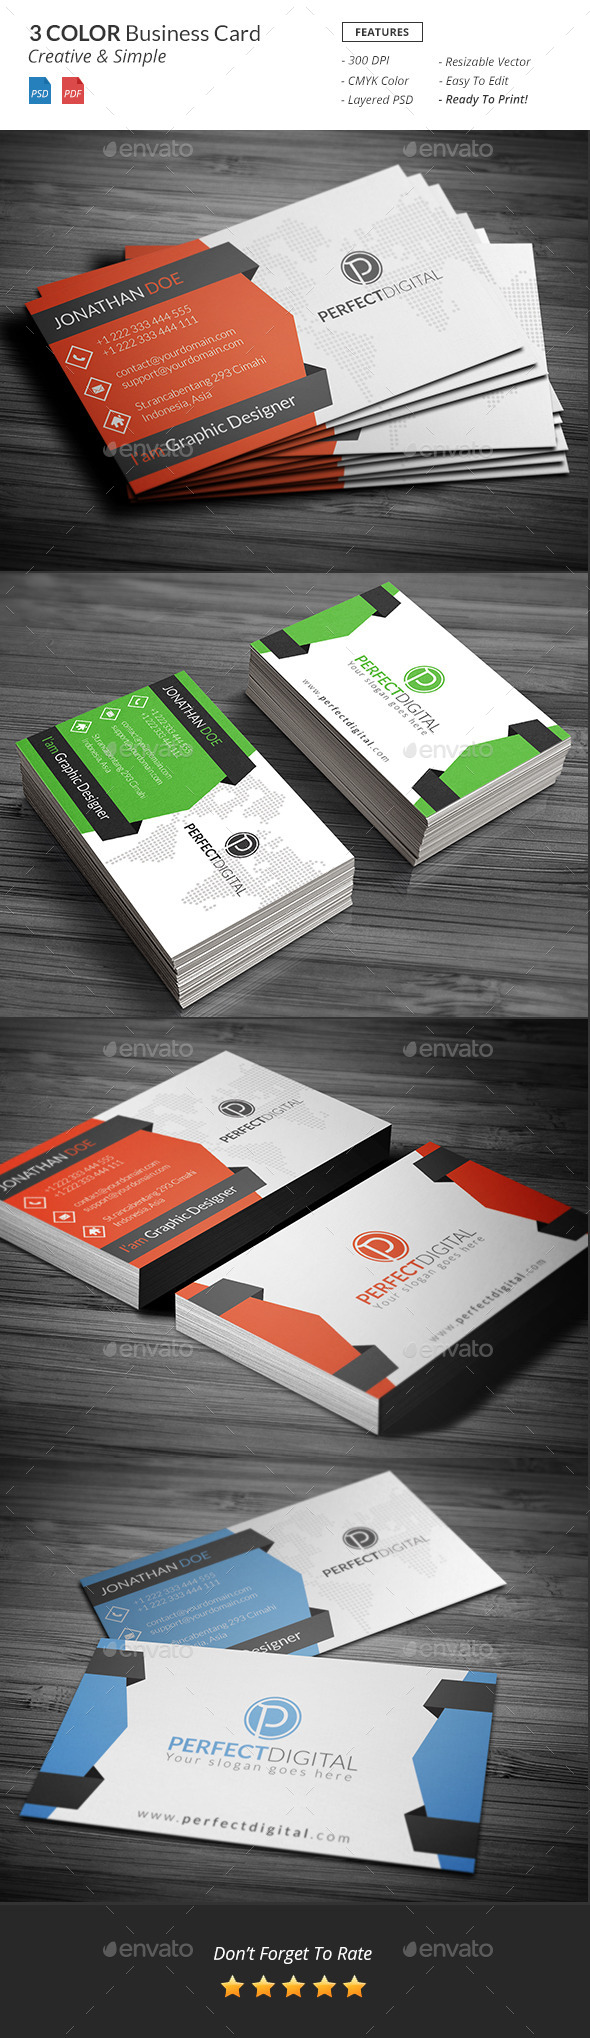 GraphicRiver Sompo Creative Bussiness Card Template v3 10918155